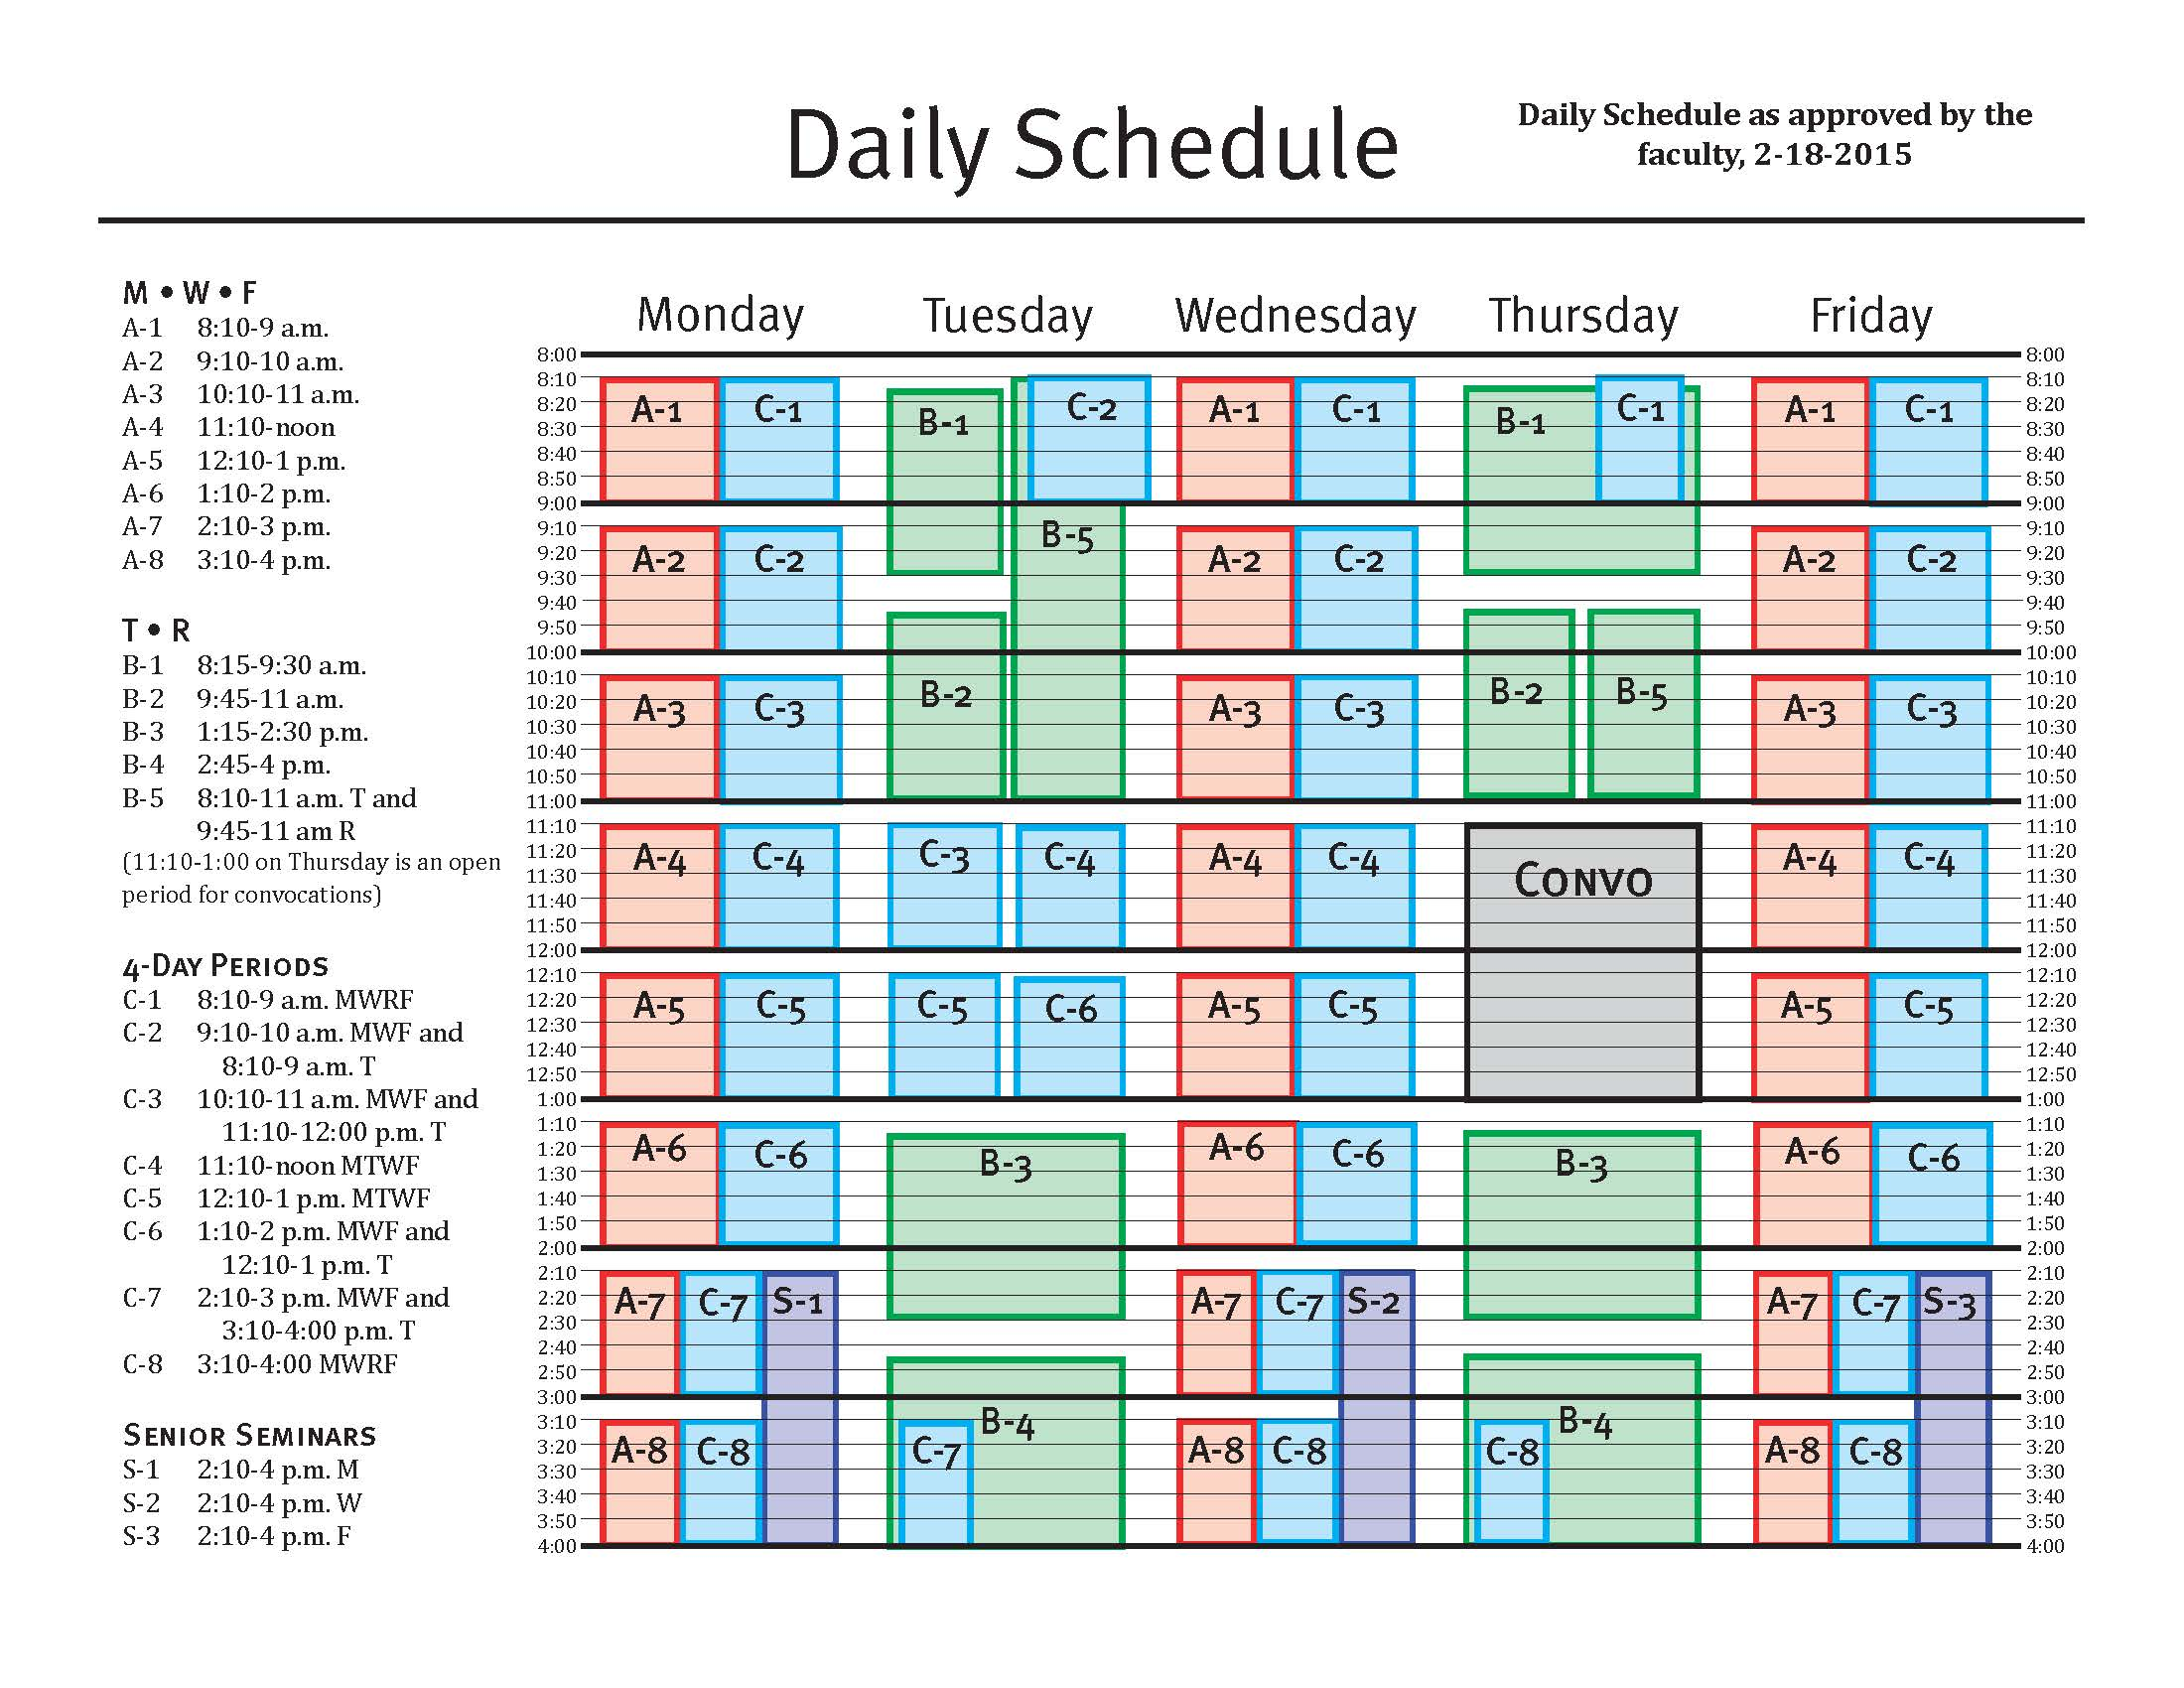 Daily Schedule appr 2-2015_Page_1